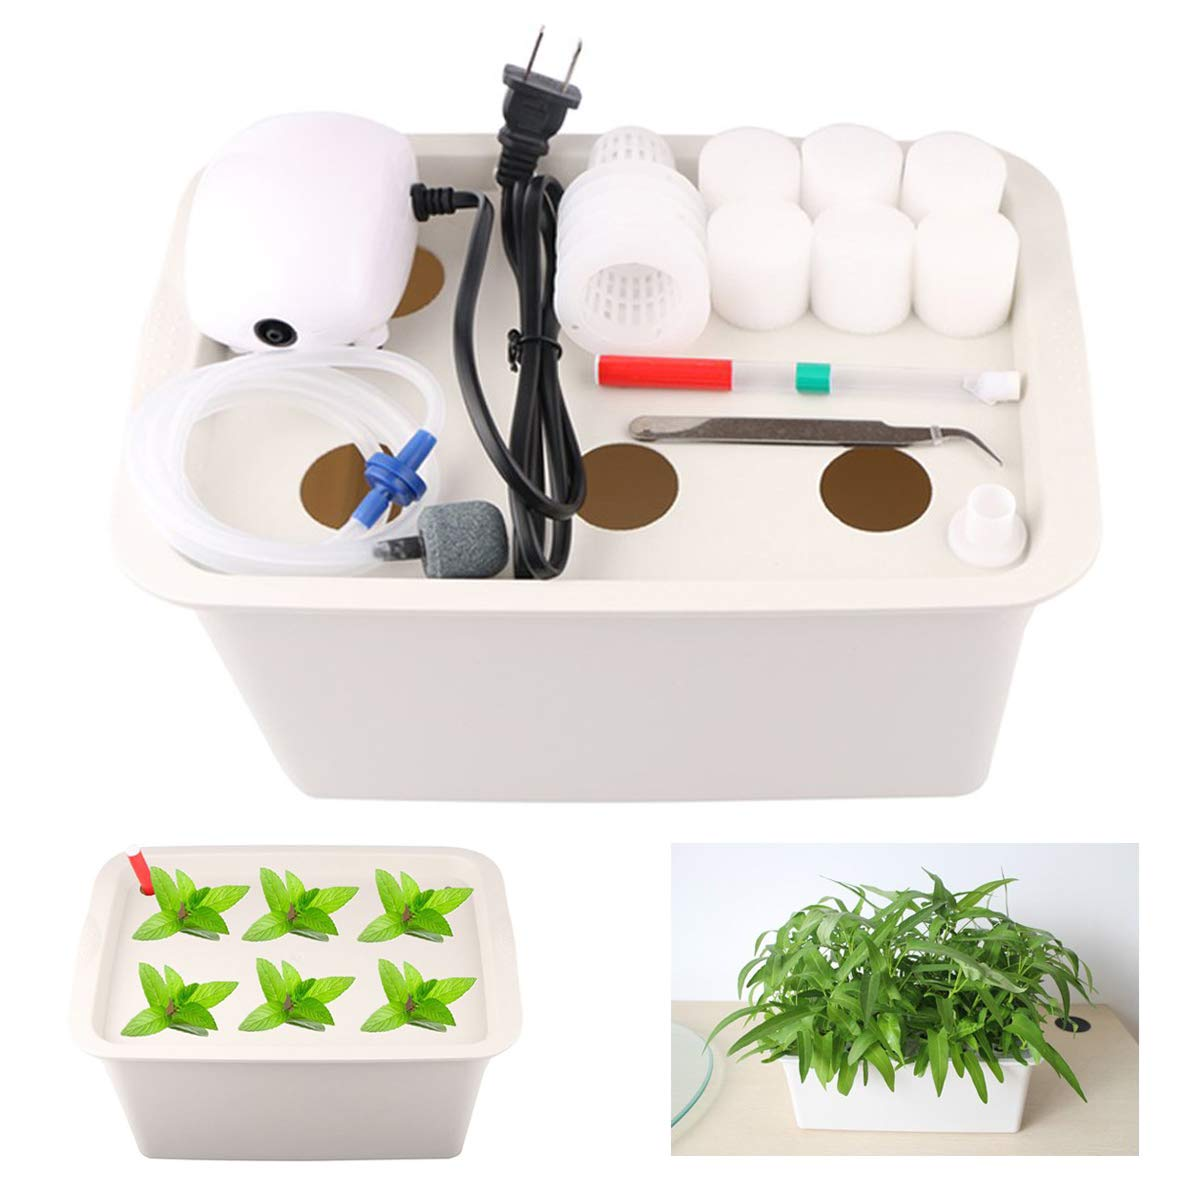 Aunifun Indoor Hydroponics Grower Kit with DIY Self Watering System